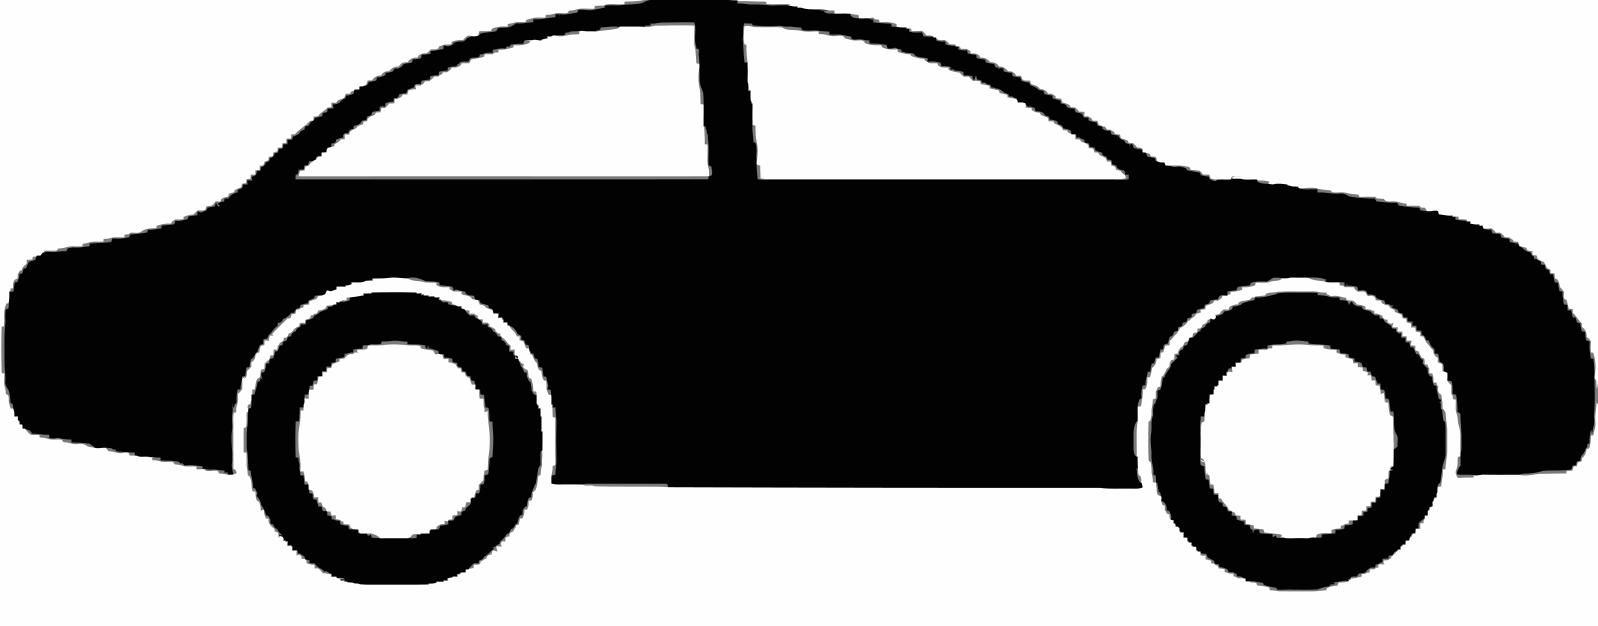 Free car silhouette clipart banner library How to Echolocate: For the Blind, VI and Sighted: Edge Finding, Edge ... banner library